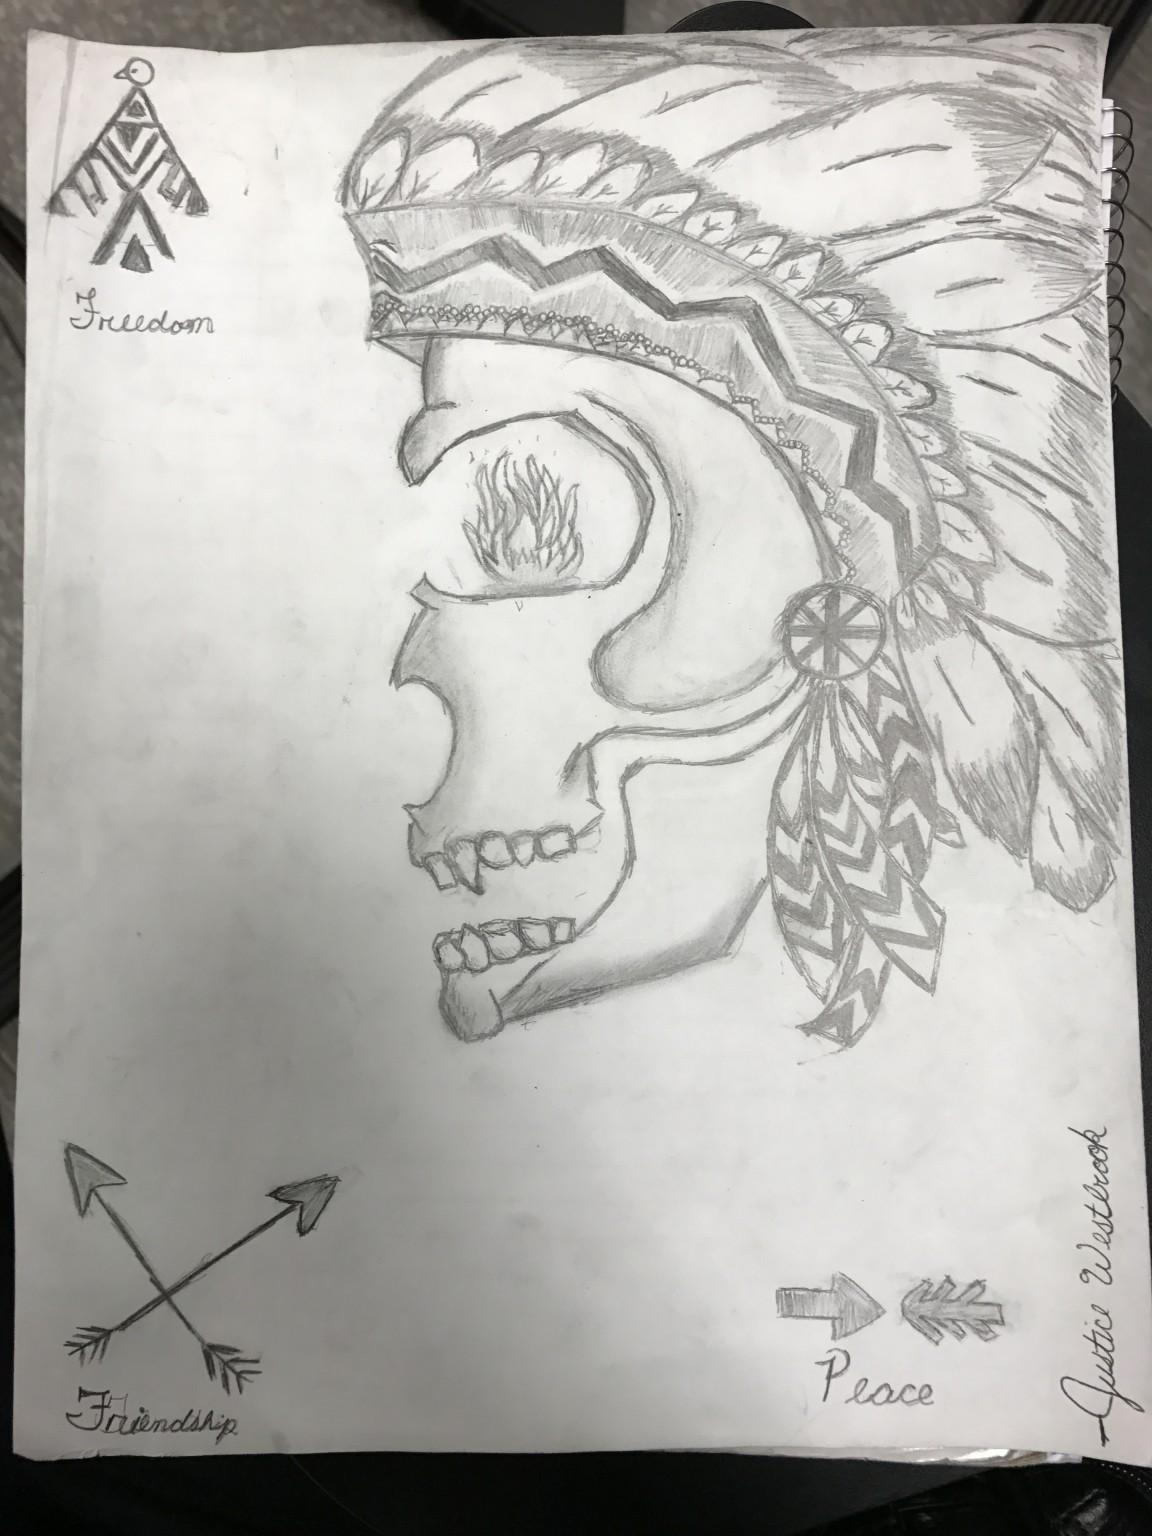 """A drawing by Justice Westbrook. """"Native American Skull with Native American symbols drawn around.¨"""